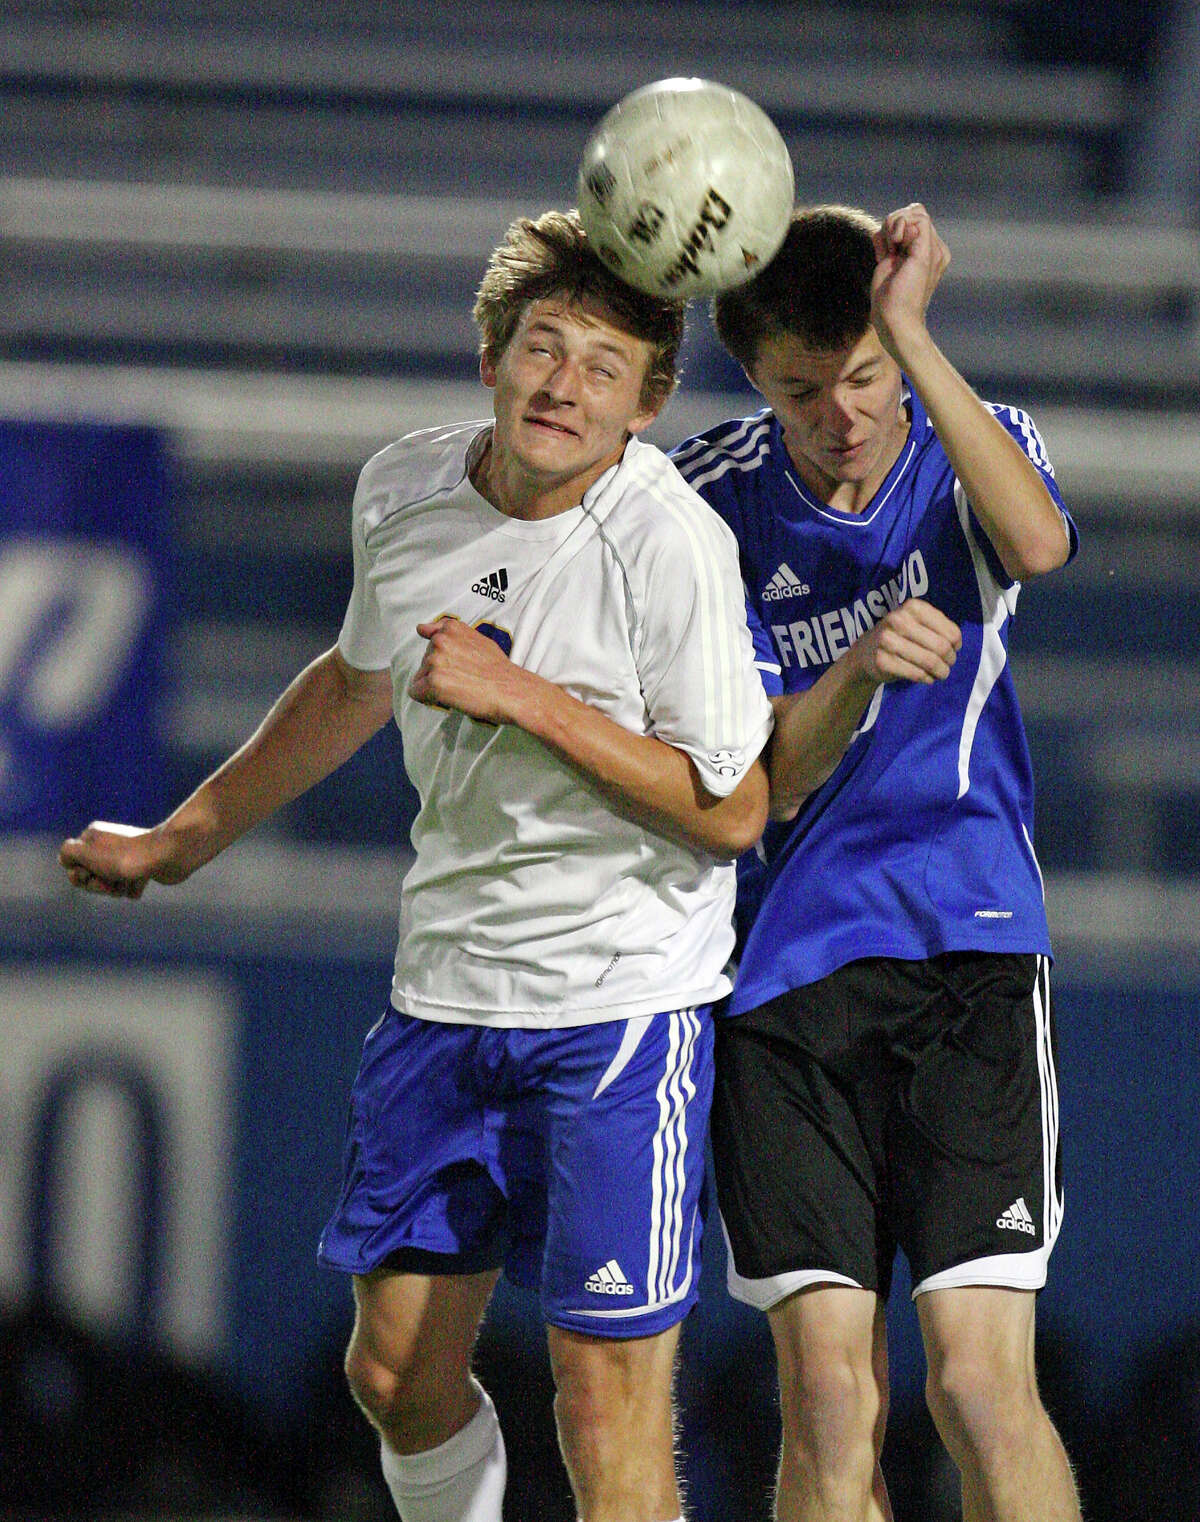 Alamo Heights' Matthew Struble (left) and Friendswood's Matthew Johnson go up for a header during first half action of their Class 4A state semifinal game held Friday April 20, 2012 at Birkelbach Field in Georgetown, Tx.